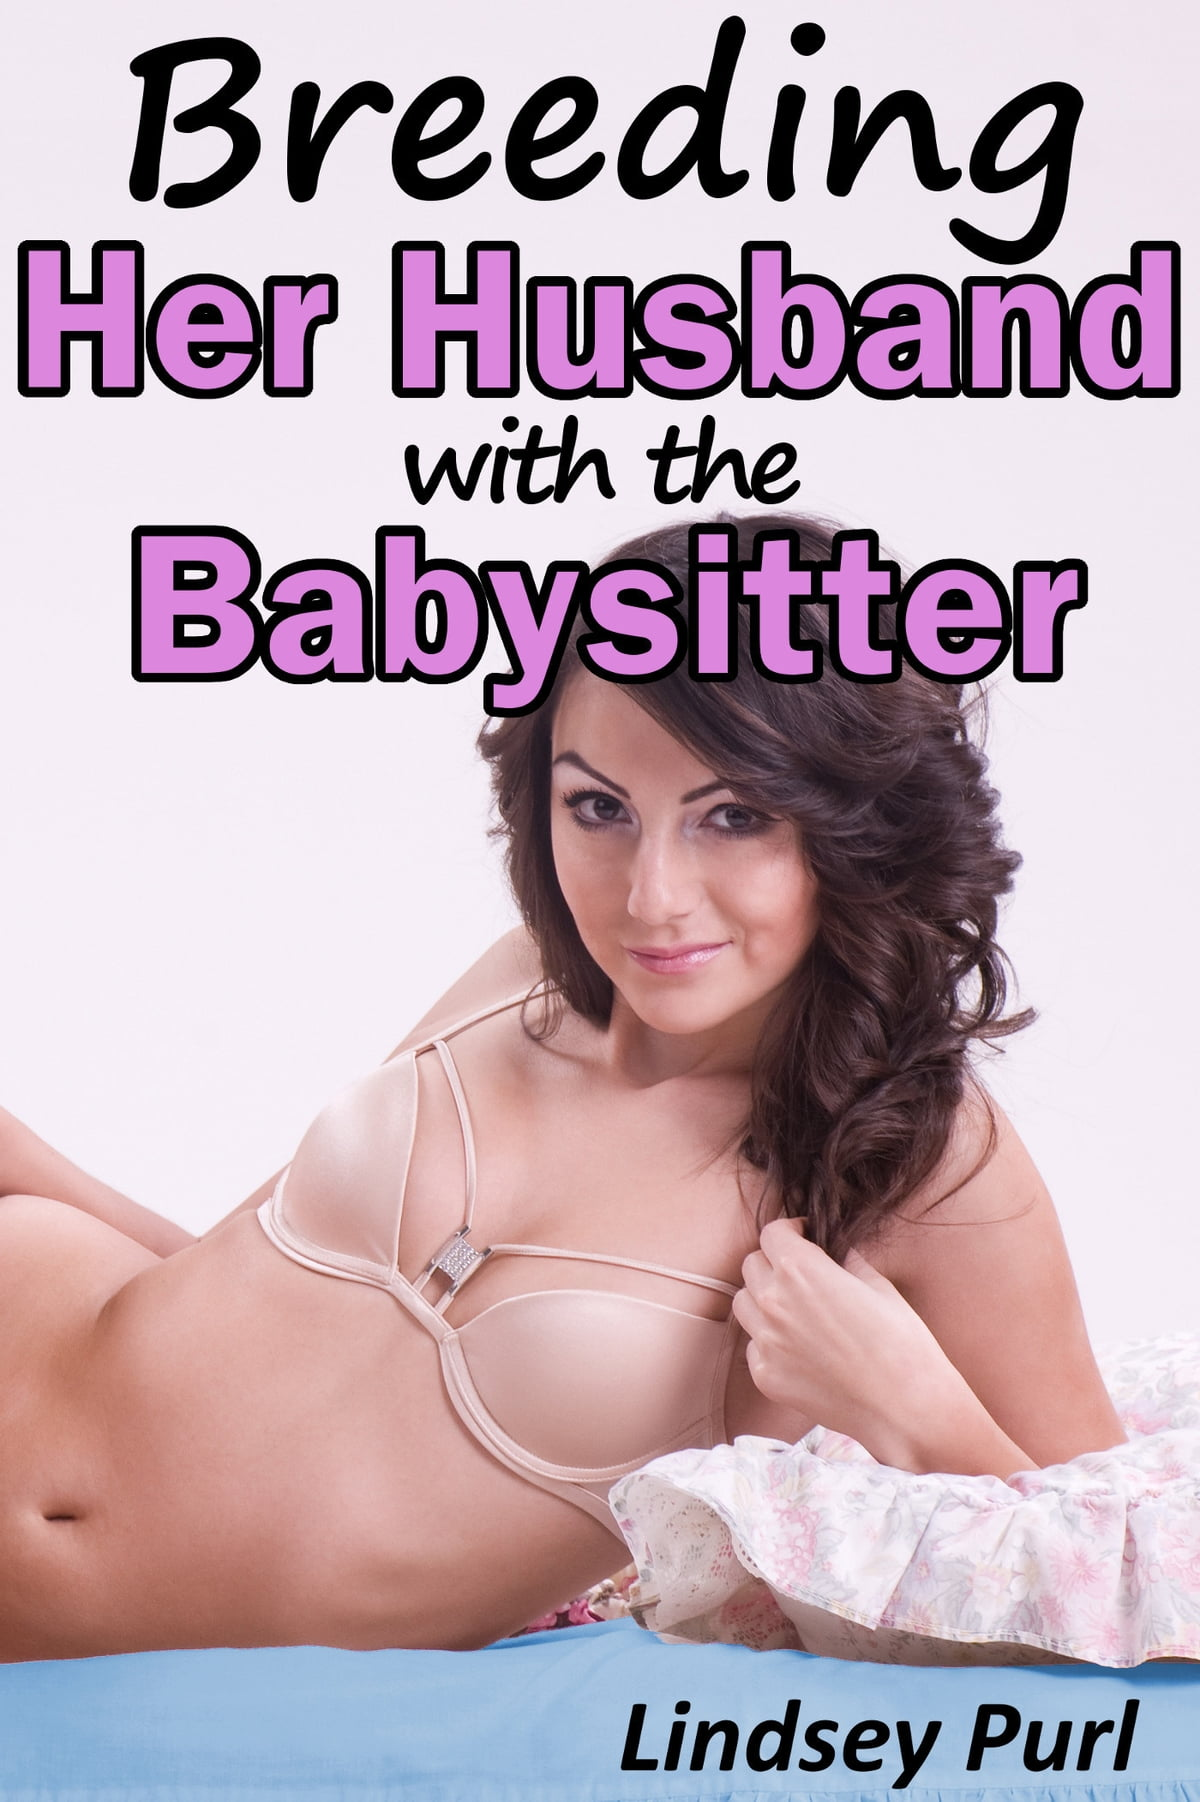 Impregnation Storys Awesome breeding her husband with the babysitter (teen bred menage